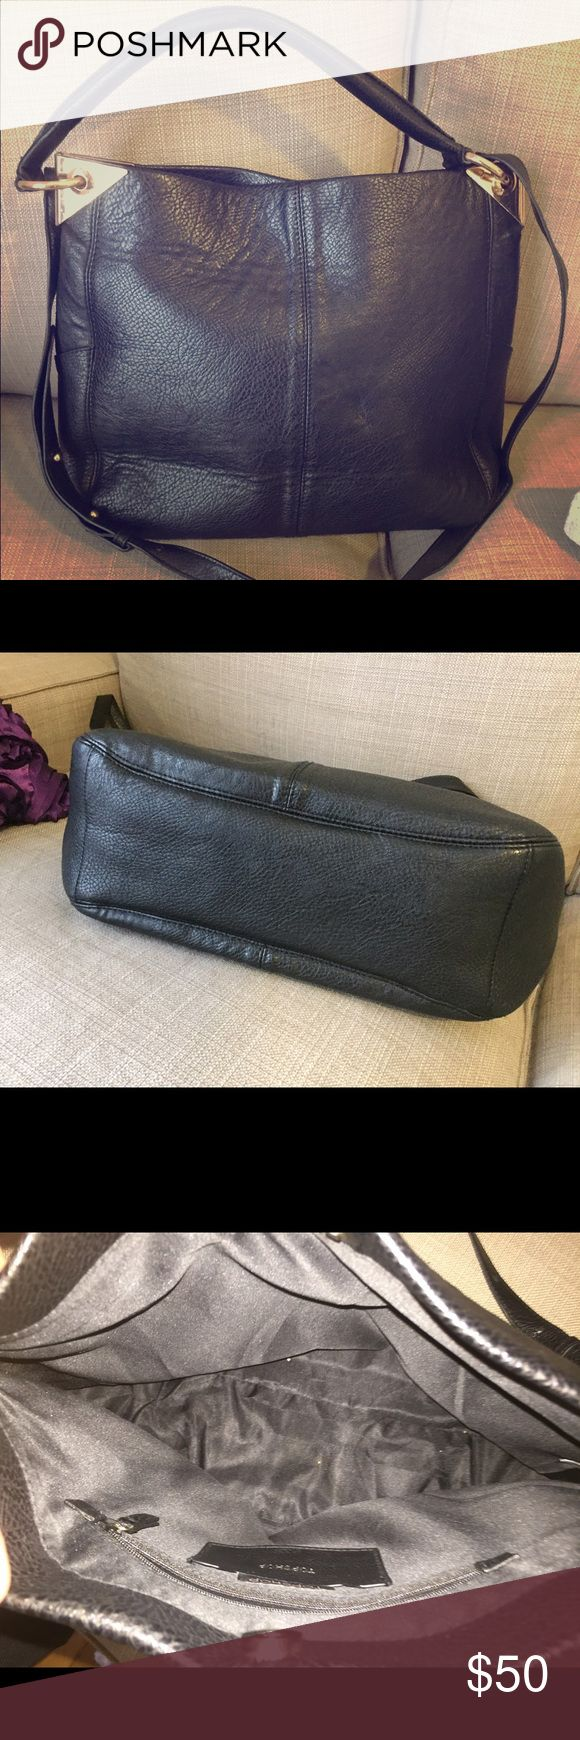 """Topshop Hobo Barely used Topshop purse! Black with gold metal details. Can wear over the shoulder or cross body. One inside zipped pocket. About 12"""" tall, 18"""" wide. Great everyday bag...Make an offer! Topshop Bags Hobos"""